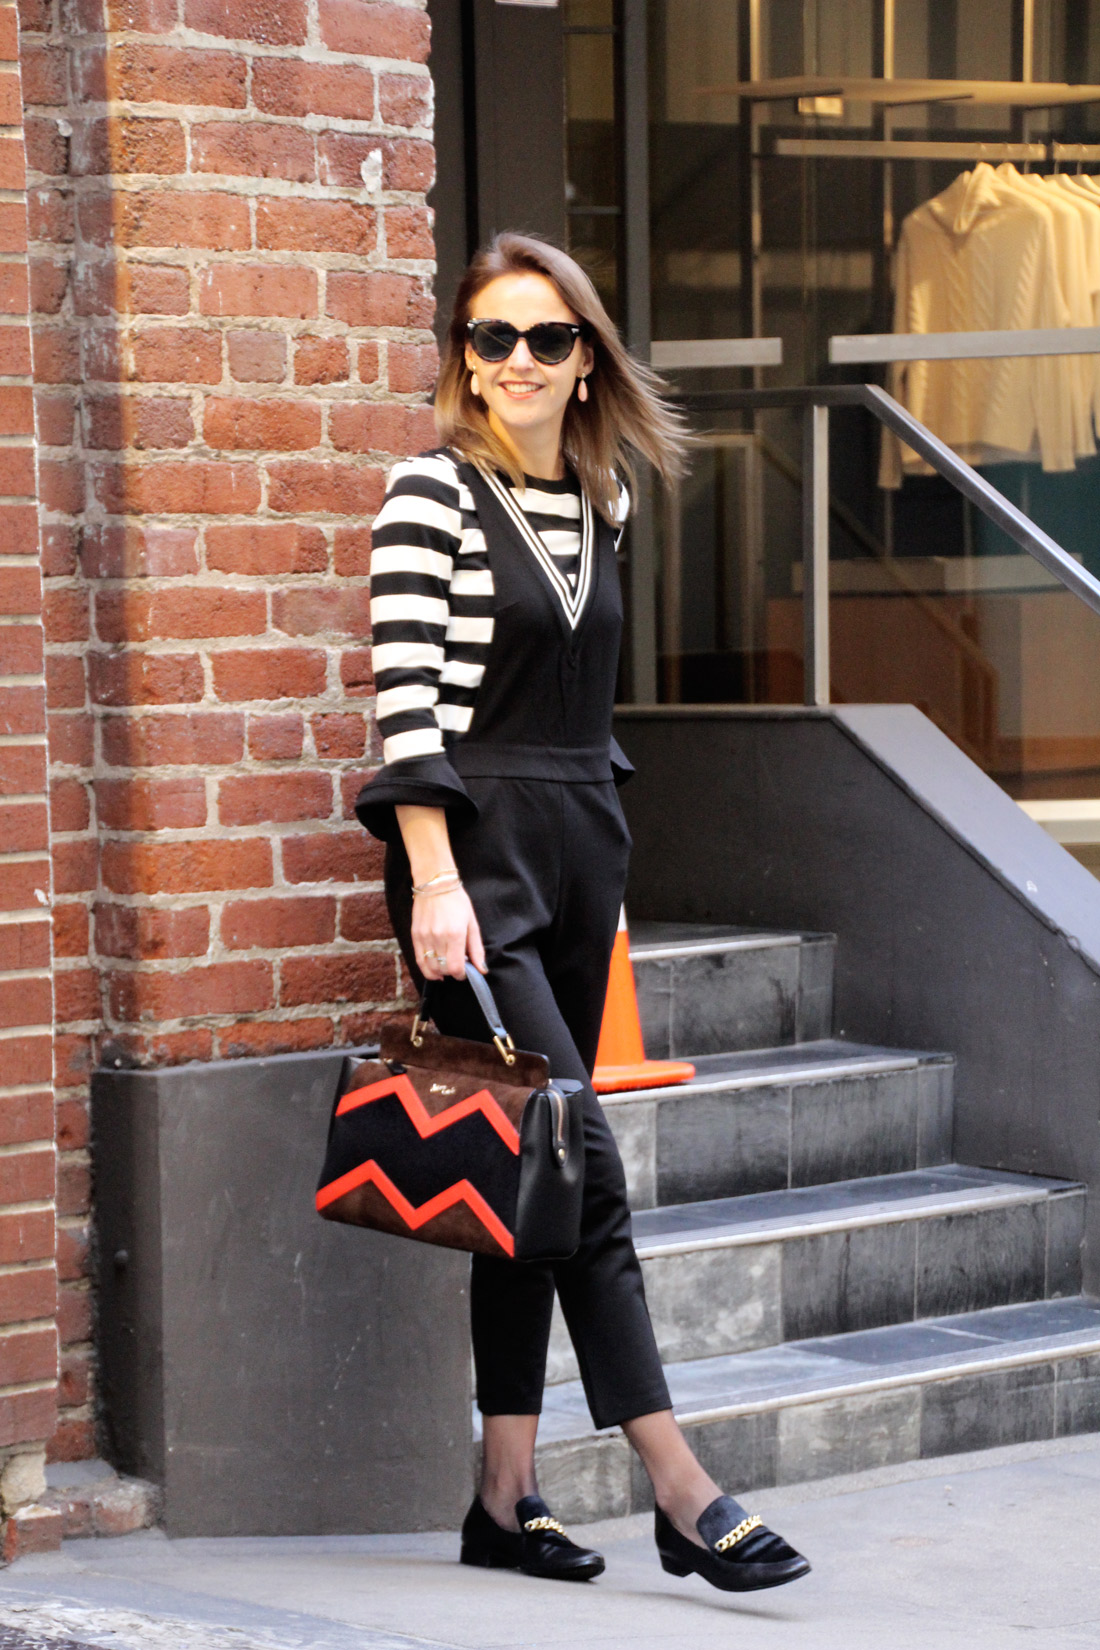 bag-at-you-fashion-blog-san-francisco-blogger